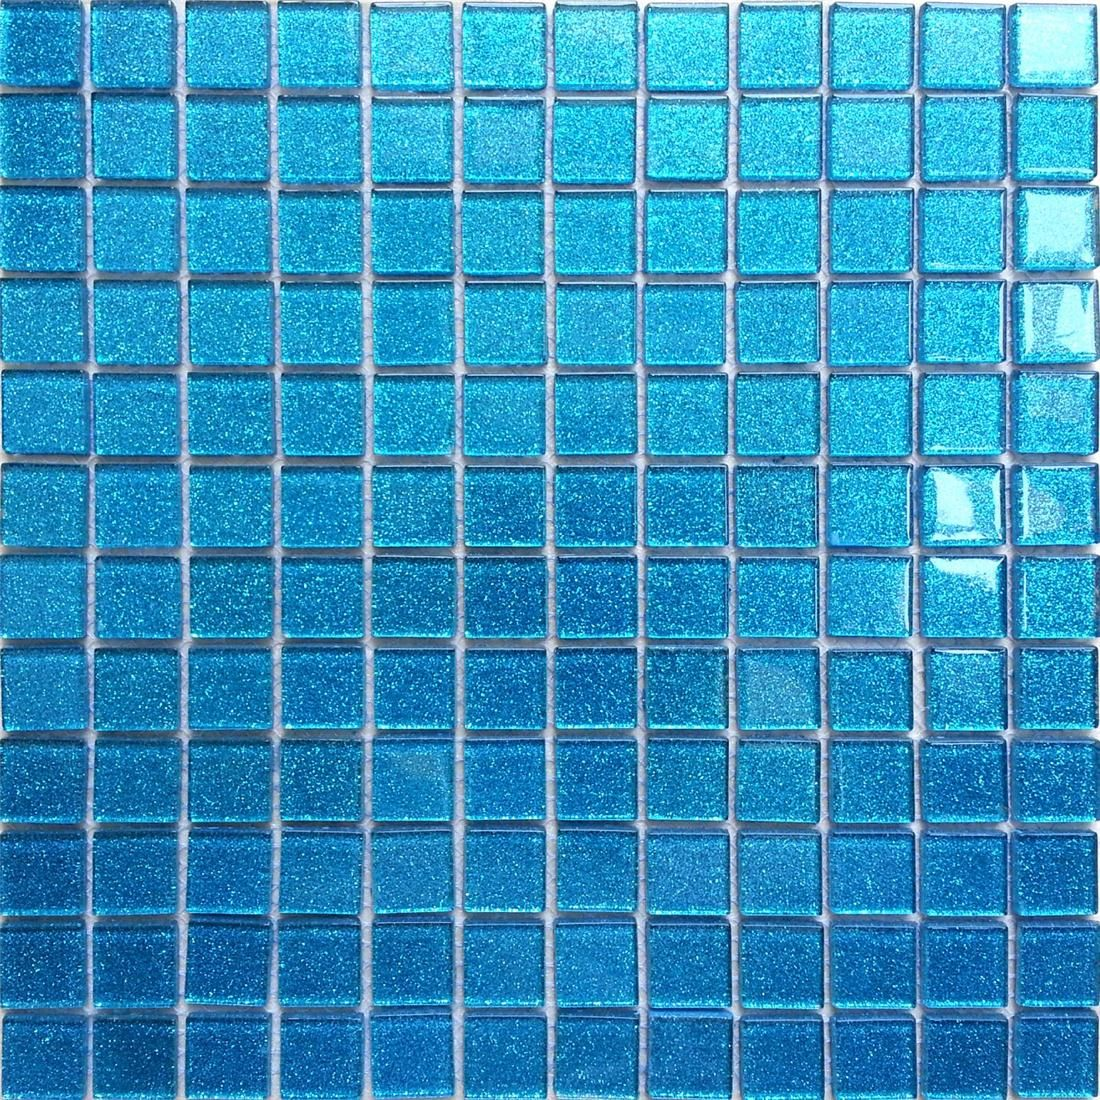 Cheap Trade Prices Glass Mosaic Tile Sheets Green Blue Red Pink Black White Sale Mosaic Tile Sheets Mosaic Glass Mosaic Wall Tiles